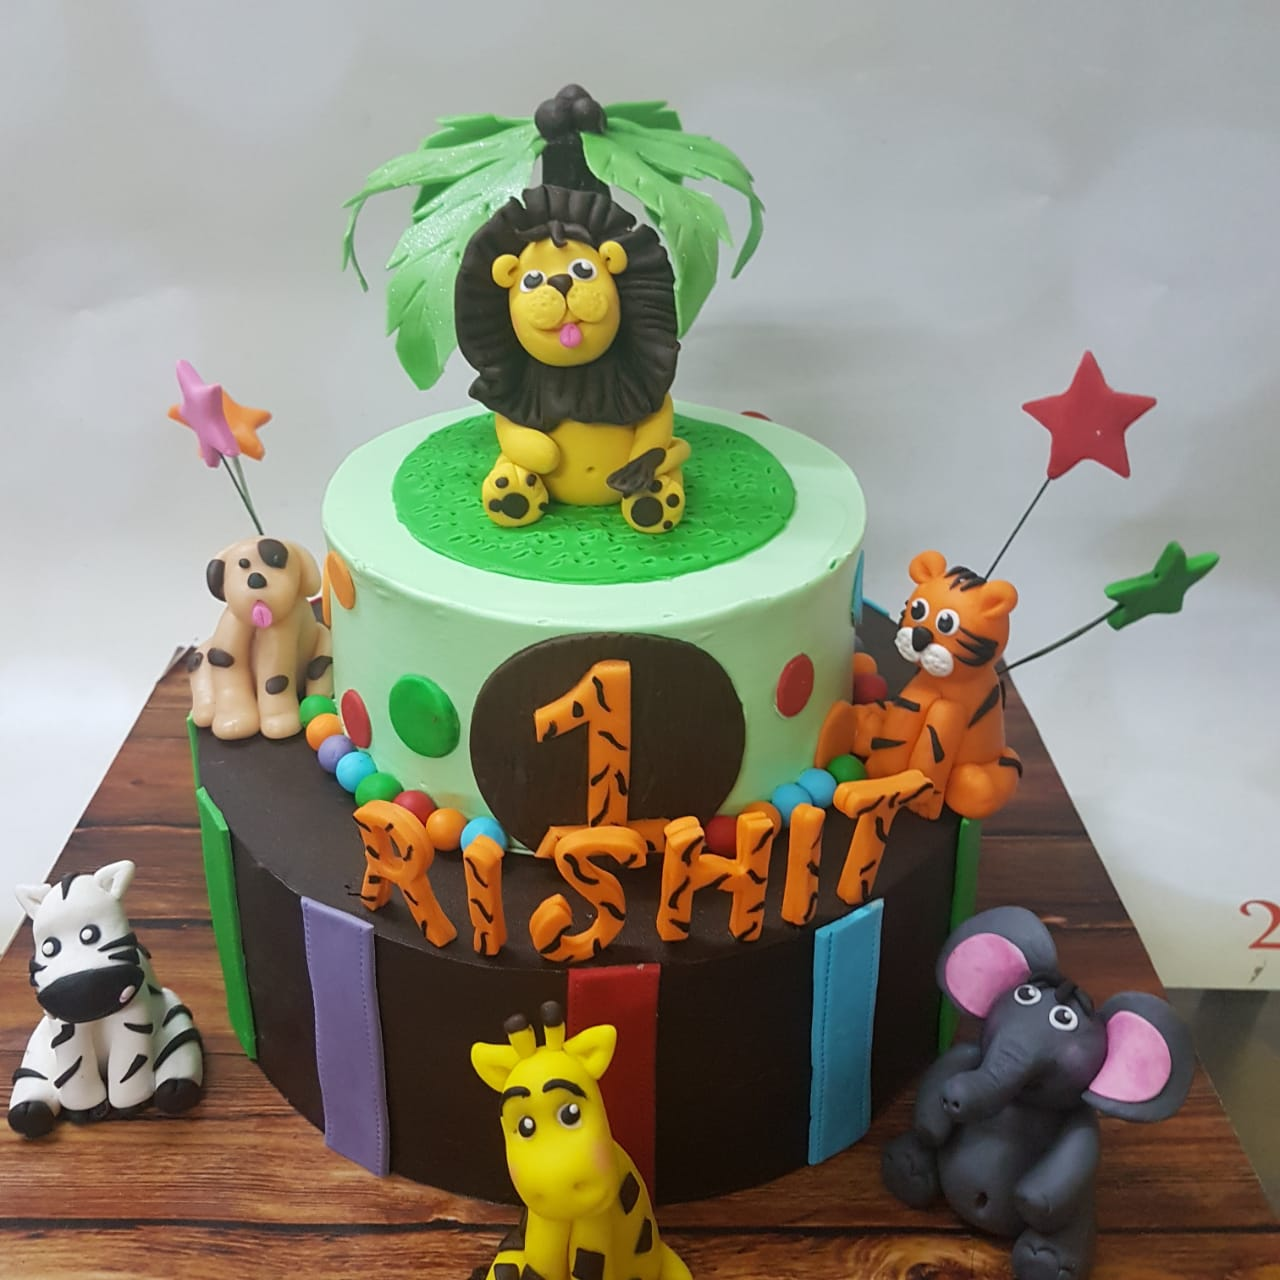 Cake for Rishit - by Shalini Salve